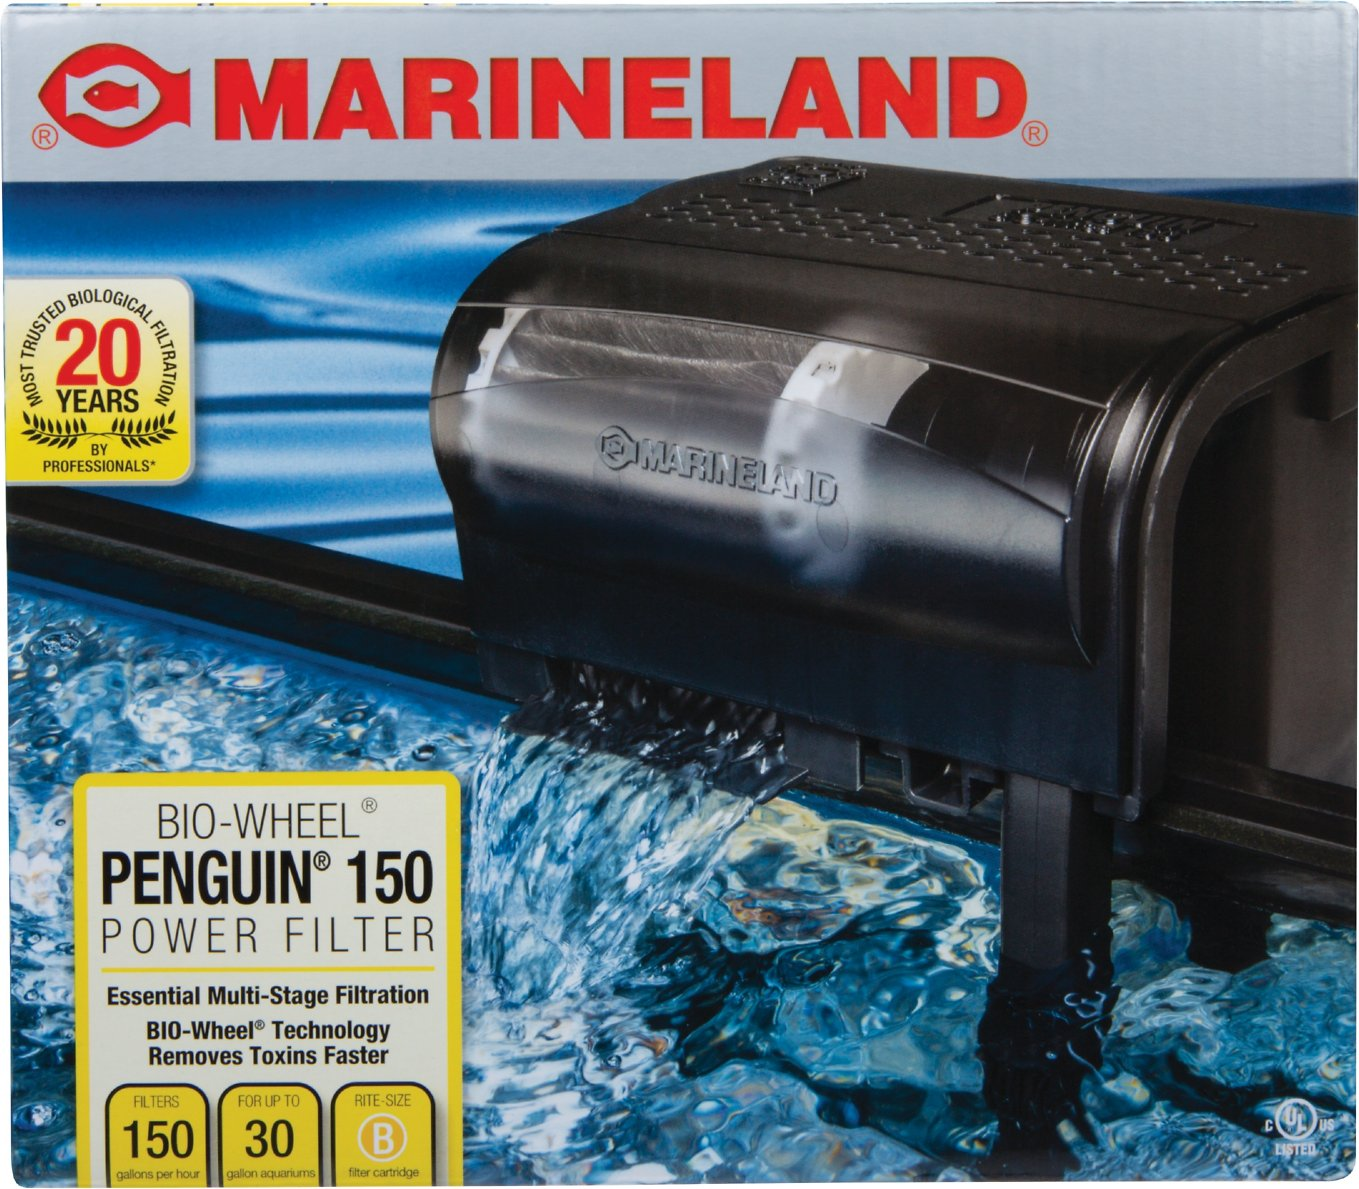 Marineland Bio-Wheel Penguin Power Filter, Size 150 ...